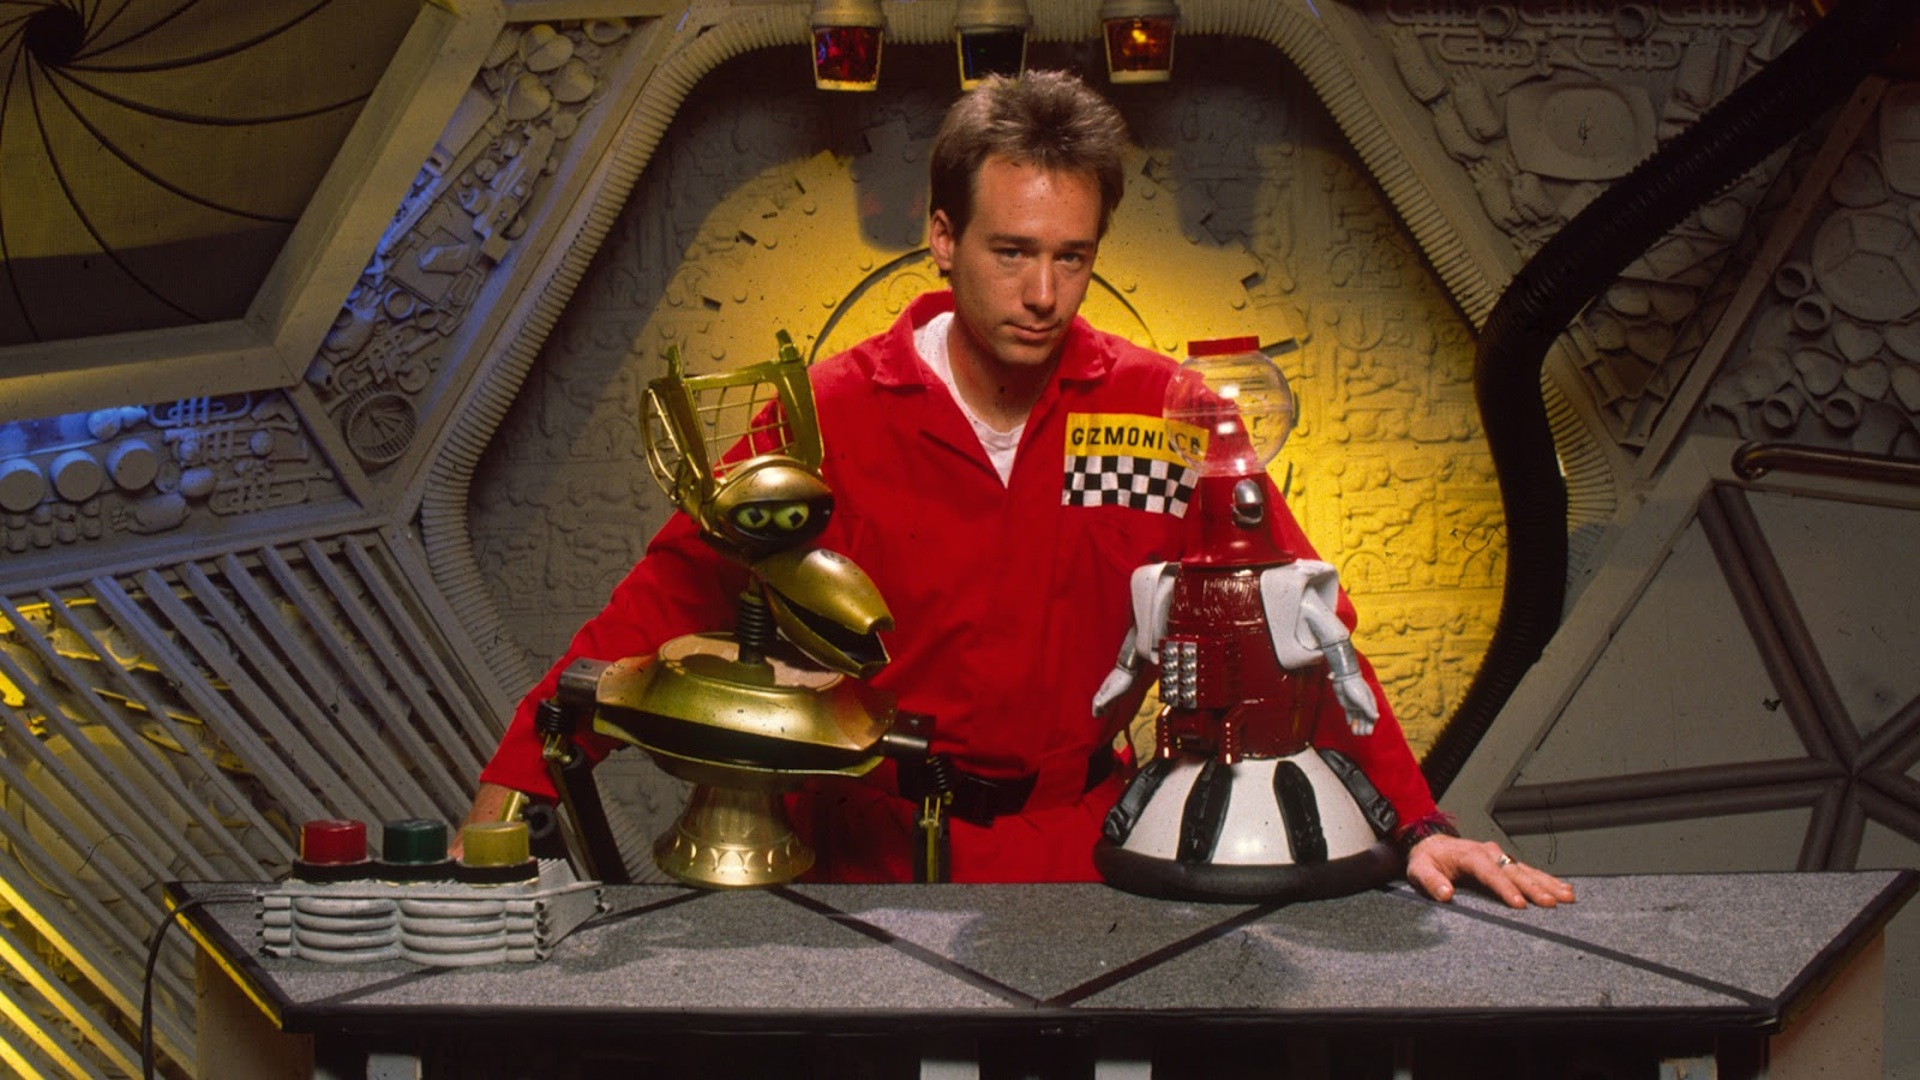 mystery science theater 3000 wikiquote - HD1600×900